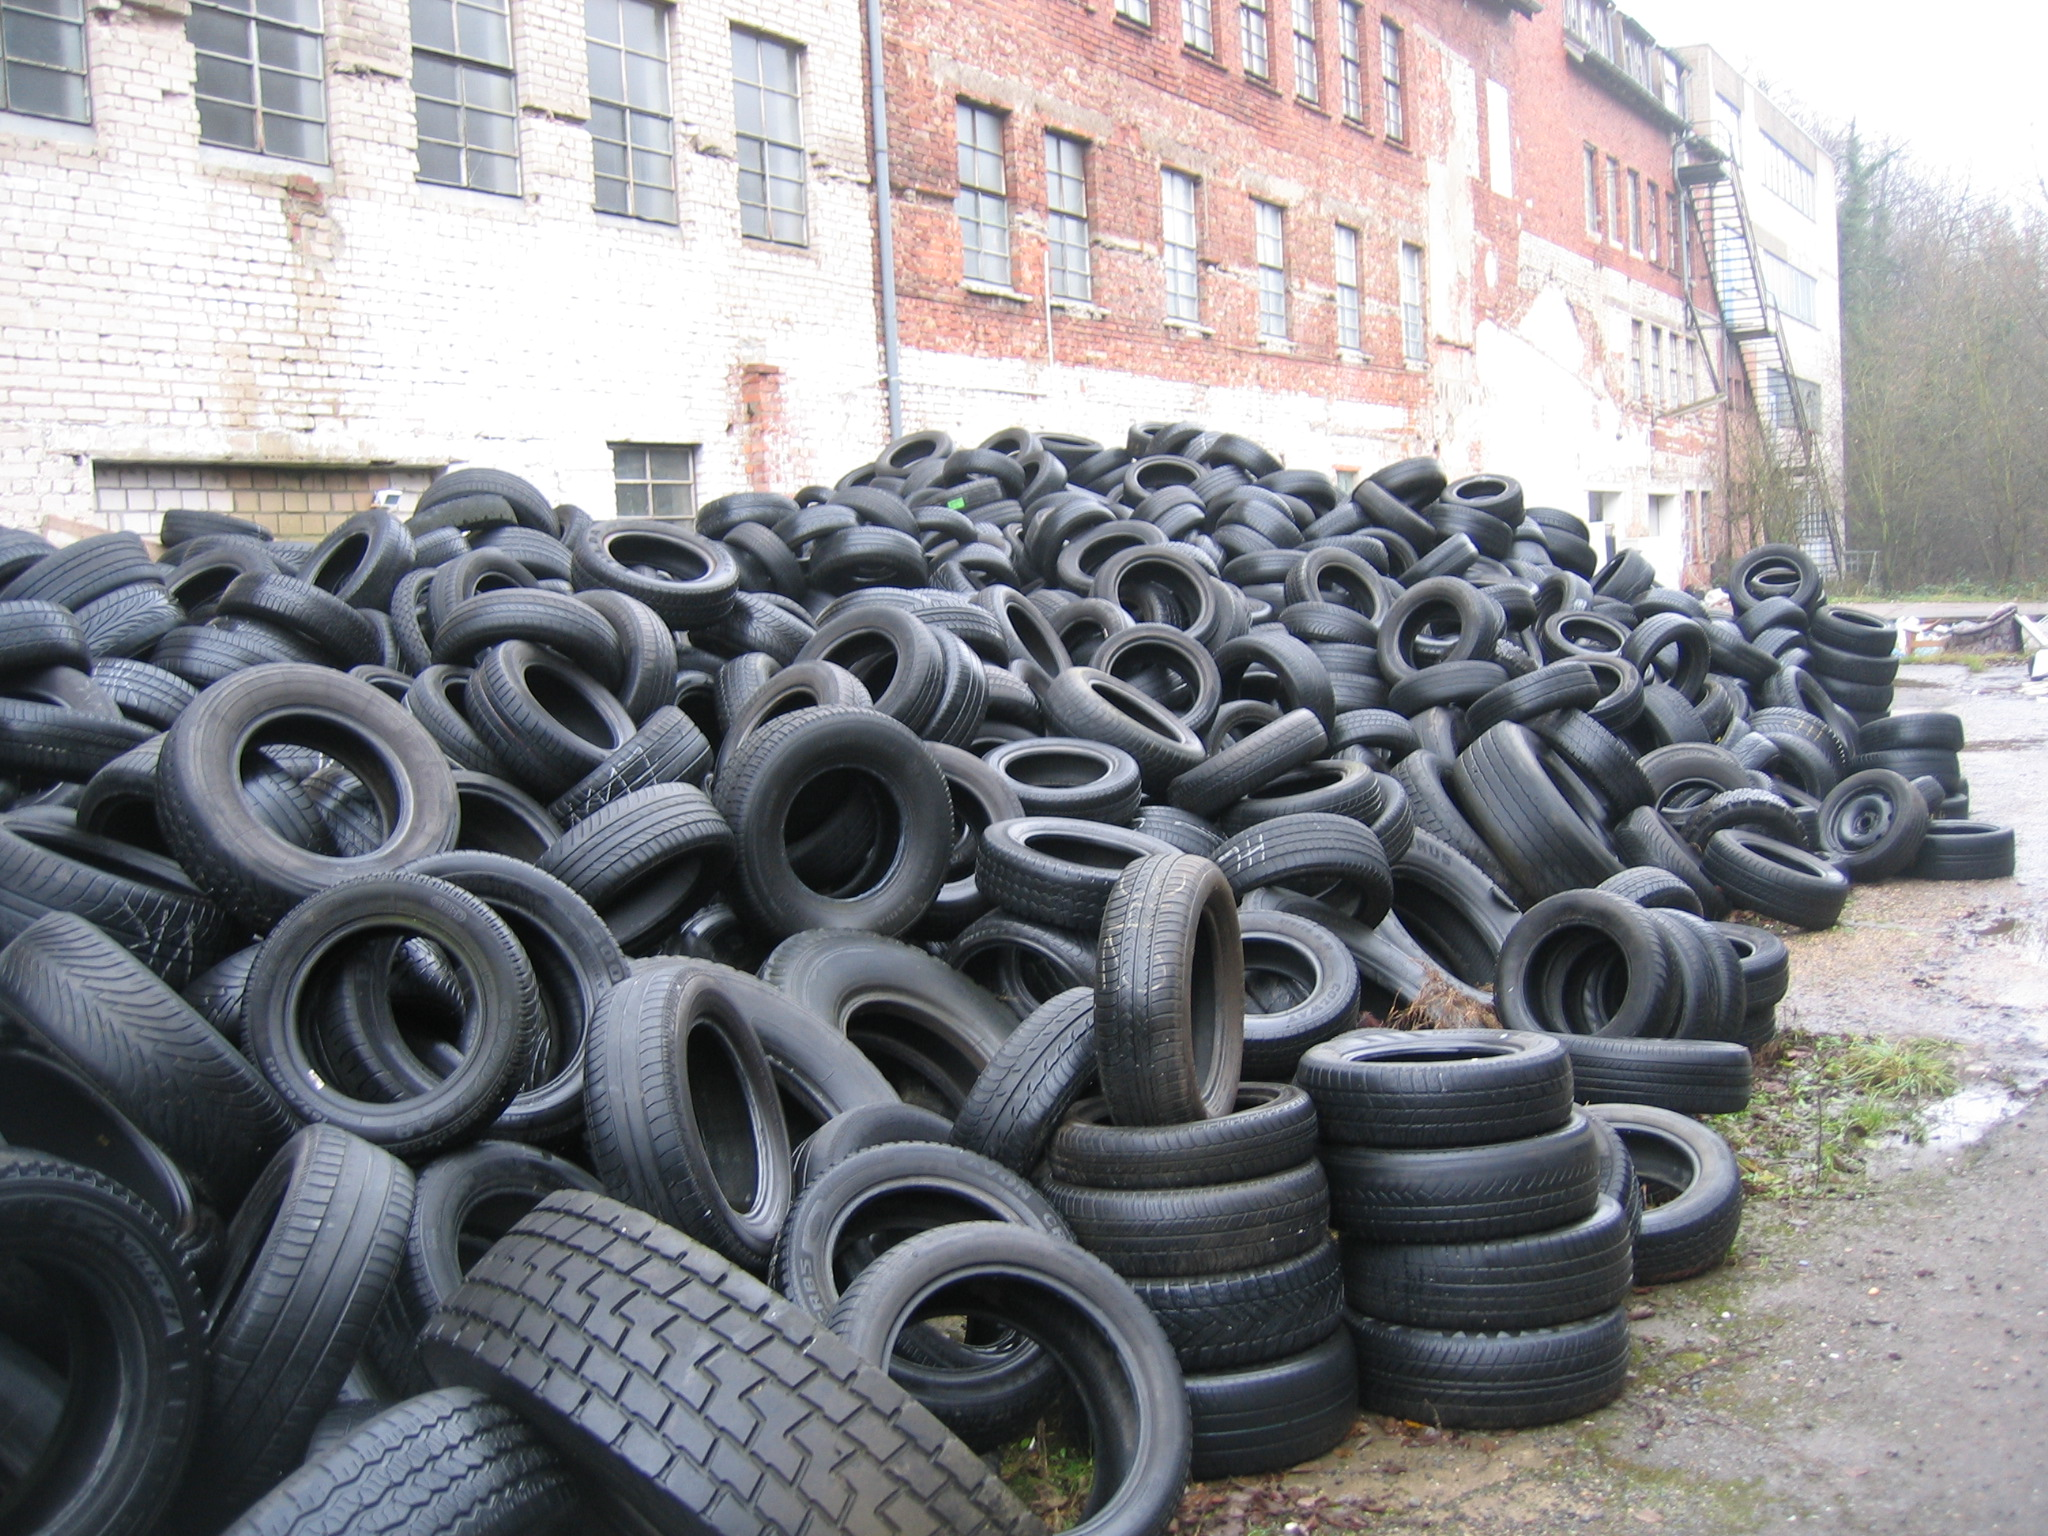 Millions of old tires spark recycling frenzy cleantechnica for What to do with old tires